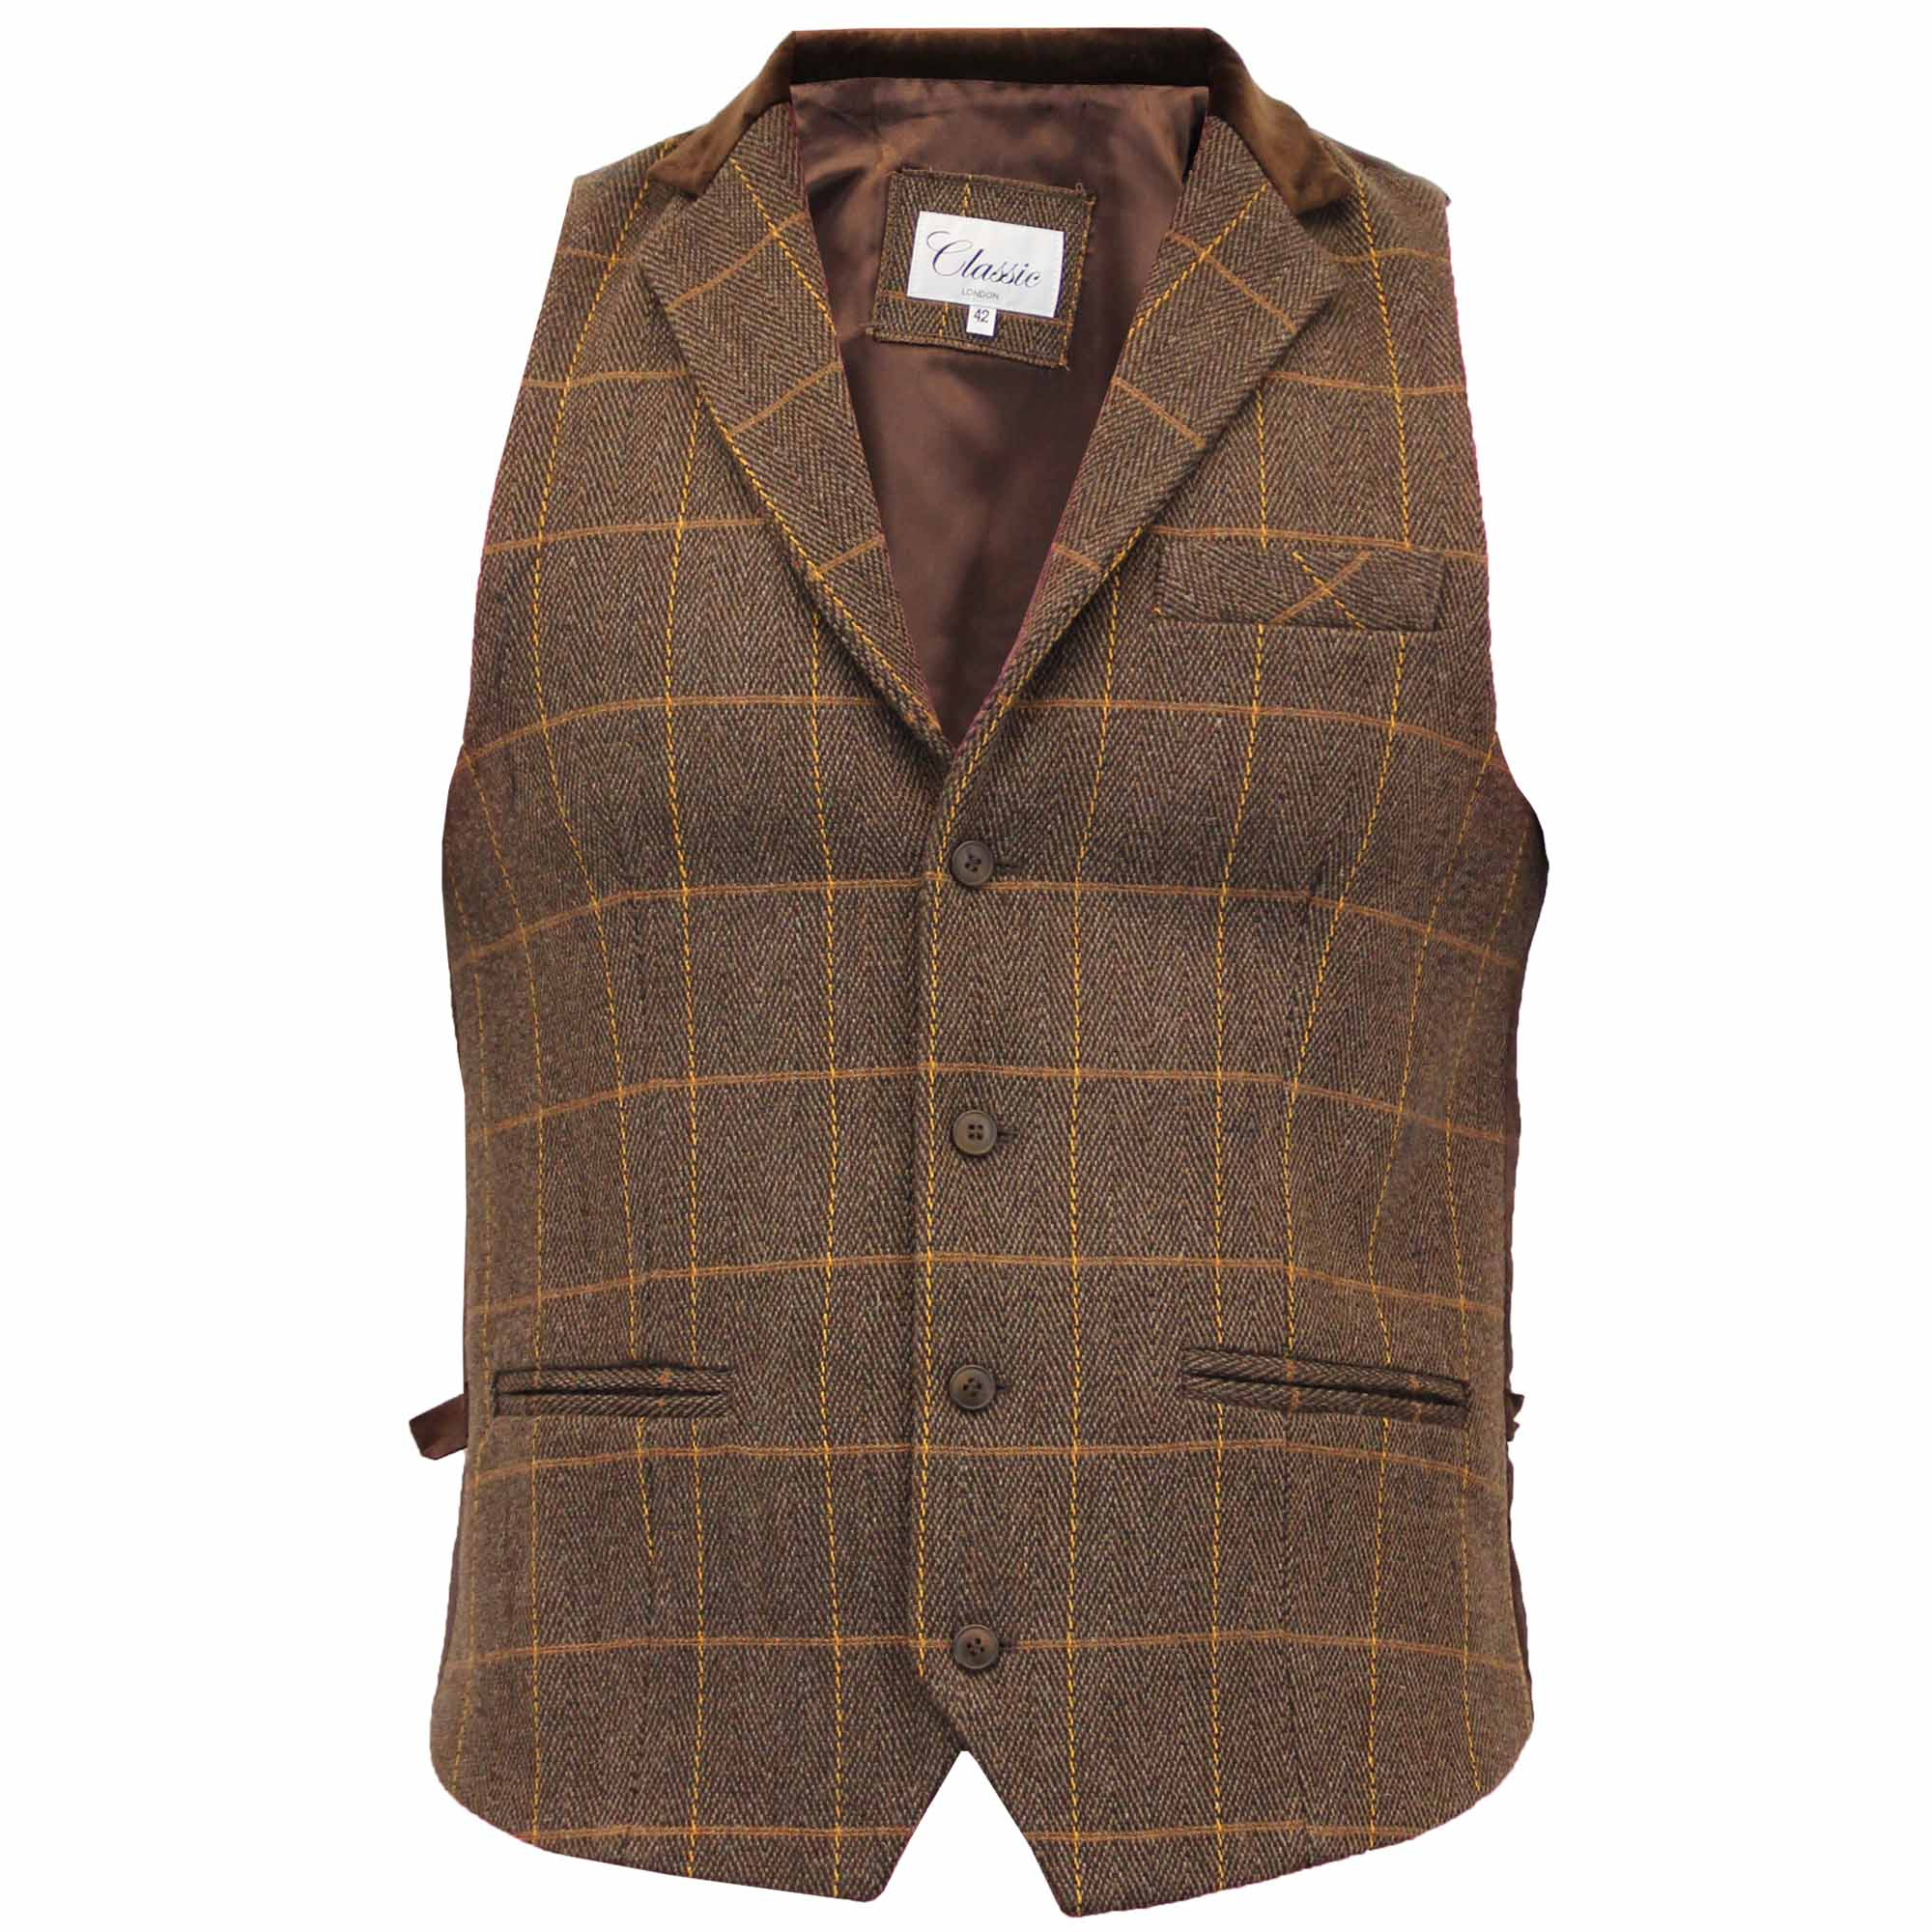 Tweed is naturally durable, insulating and practical - the perfect fabric for a vest. With traditional British designs trending on the international fashion scene, tweed truly is enjoying its moment. Our collection of tweed vests come in a variety of colors, styles and designs perfect for daily wear and formal occasions.